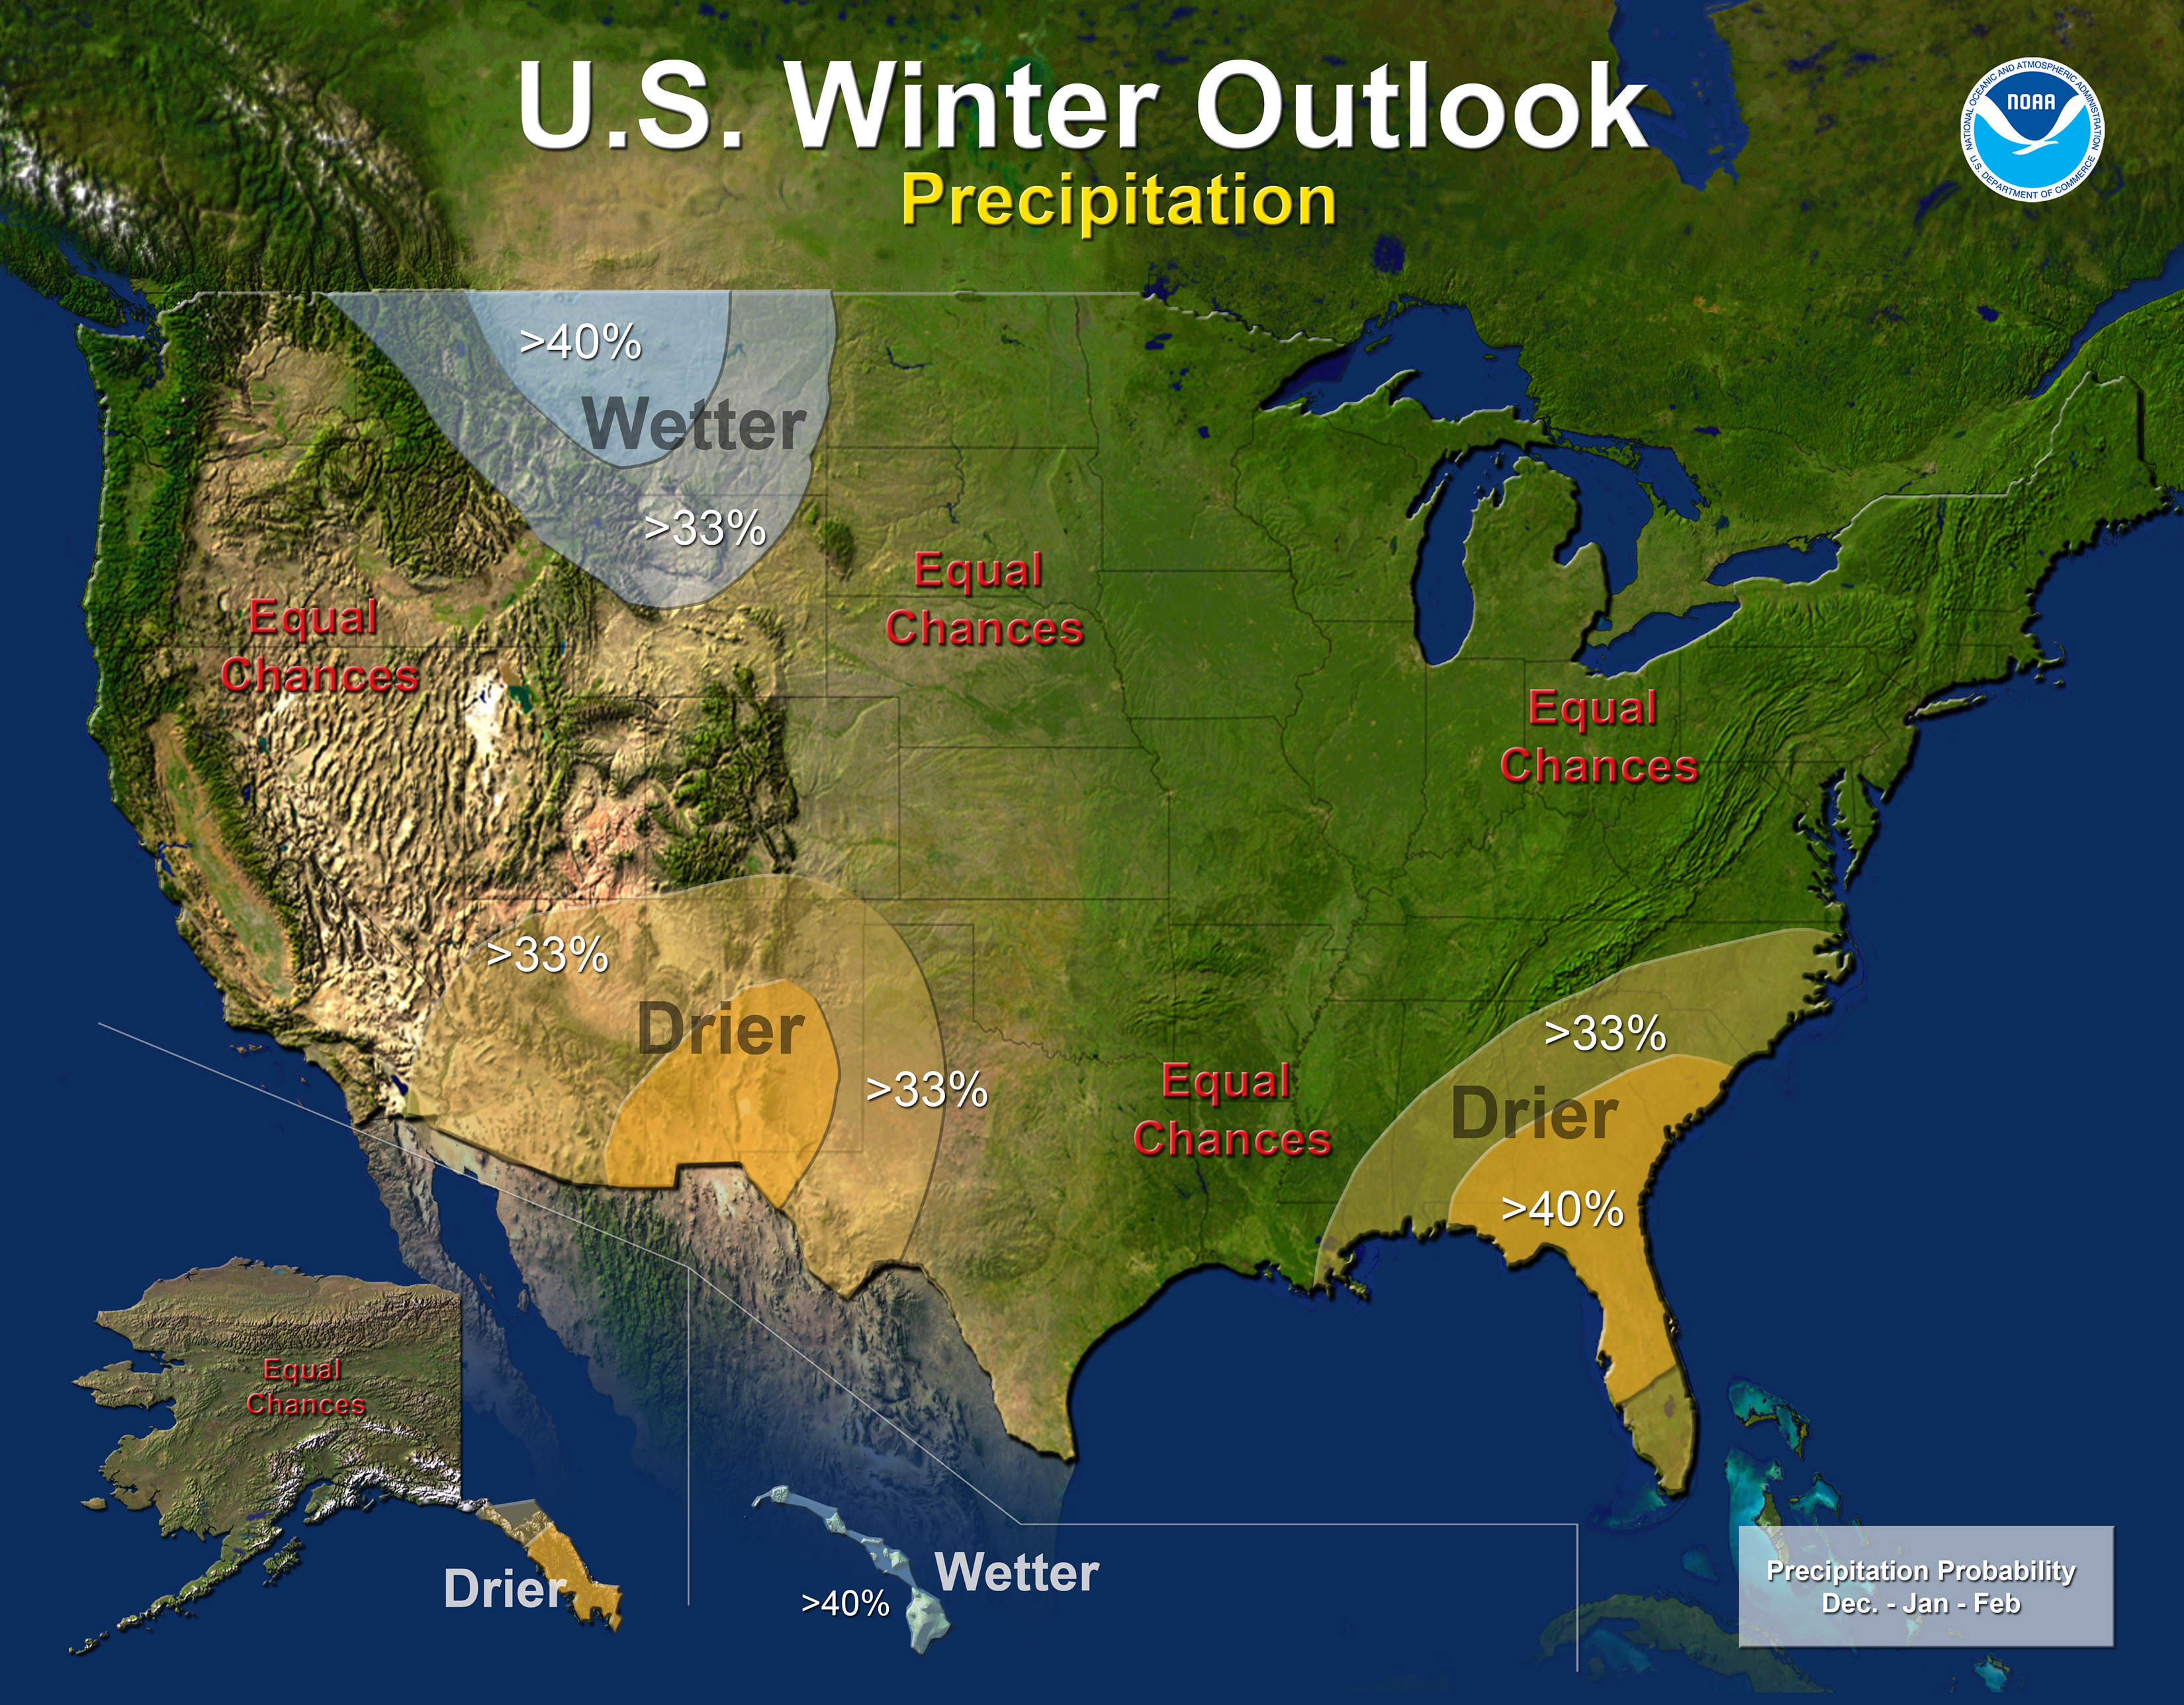 US Winter Outlook by National Weather Service SnowBrains